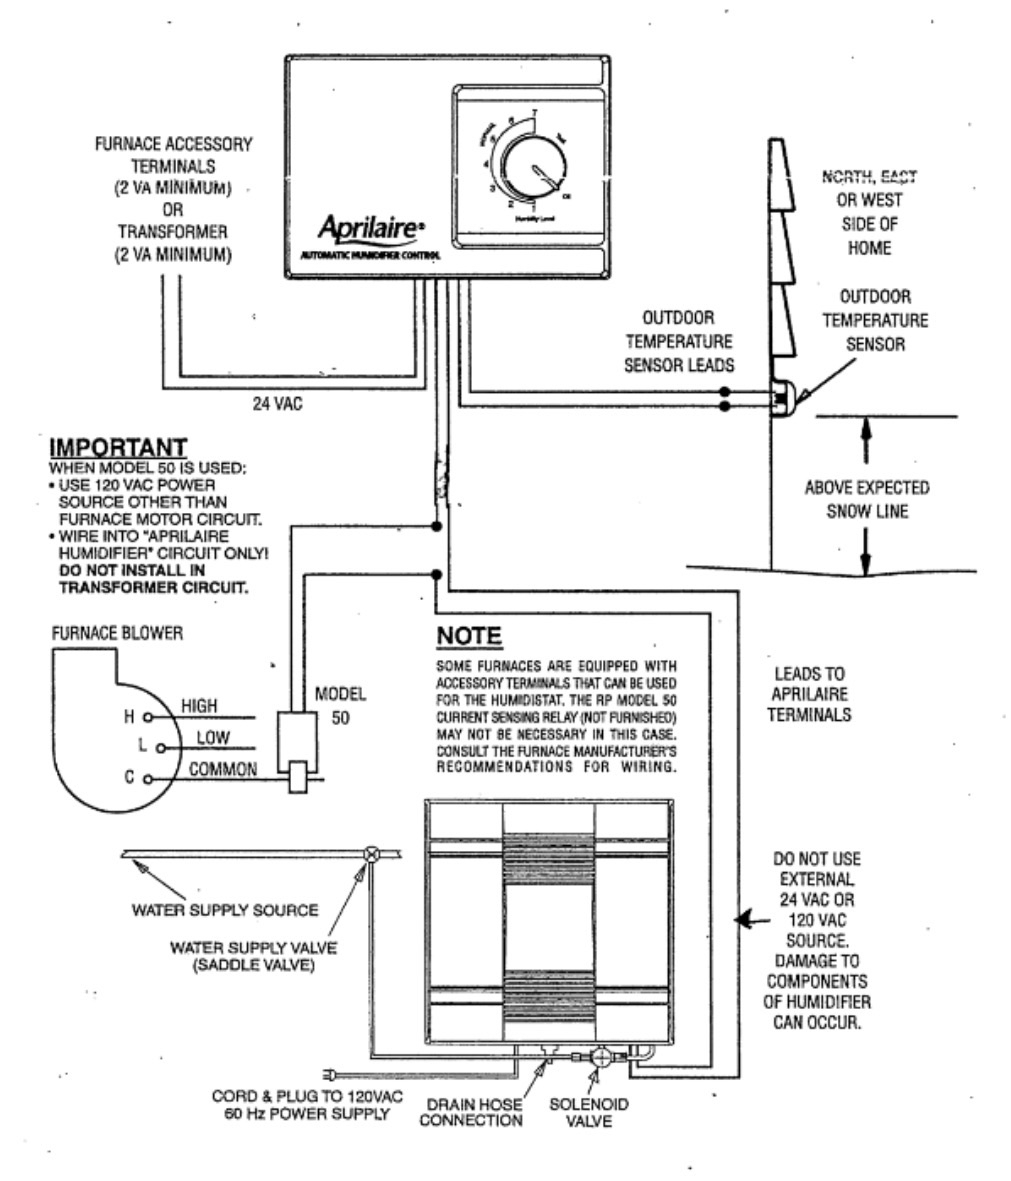 aprilaire 700 wiring diagram Download-aprilaire 700 wiring diagram 19-b